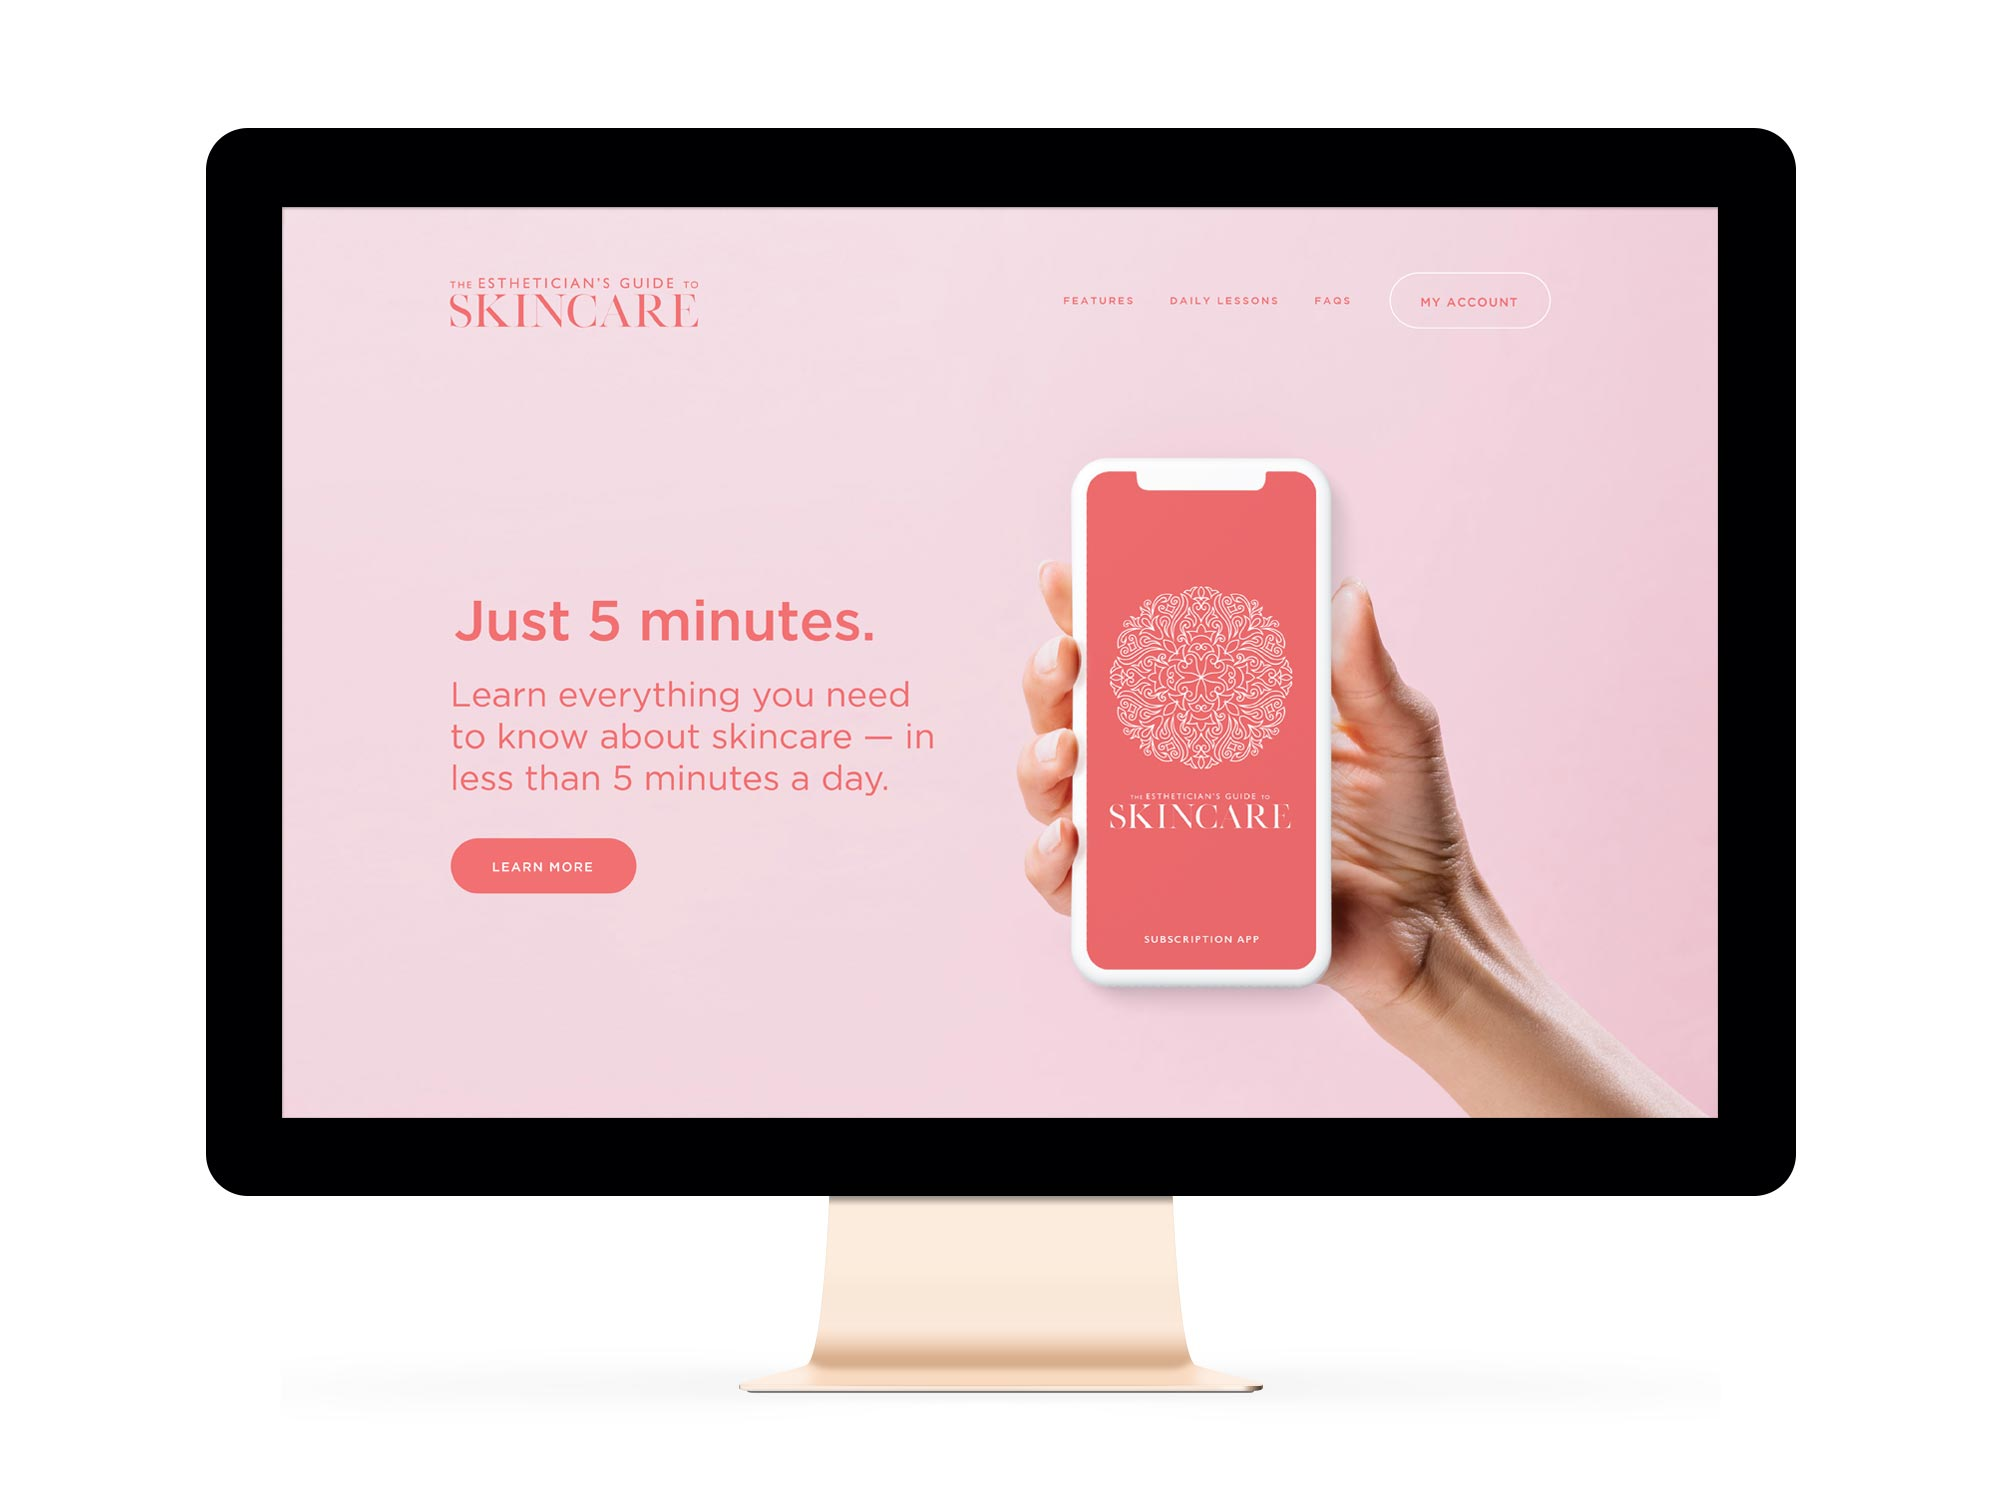 The Estheticians Guide to Skincare Winnipeg Feminist Brands Website Design Feminist Entrepreneurs Feature